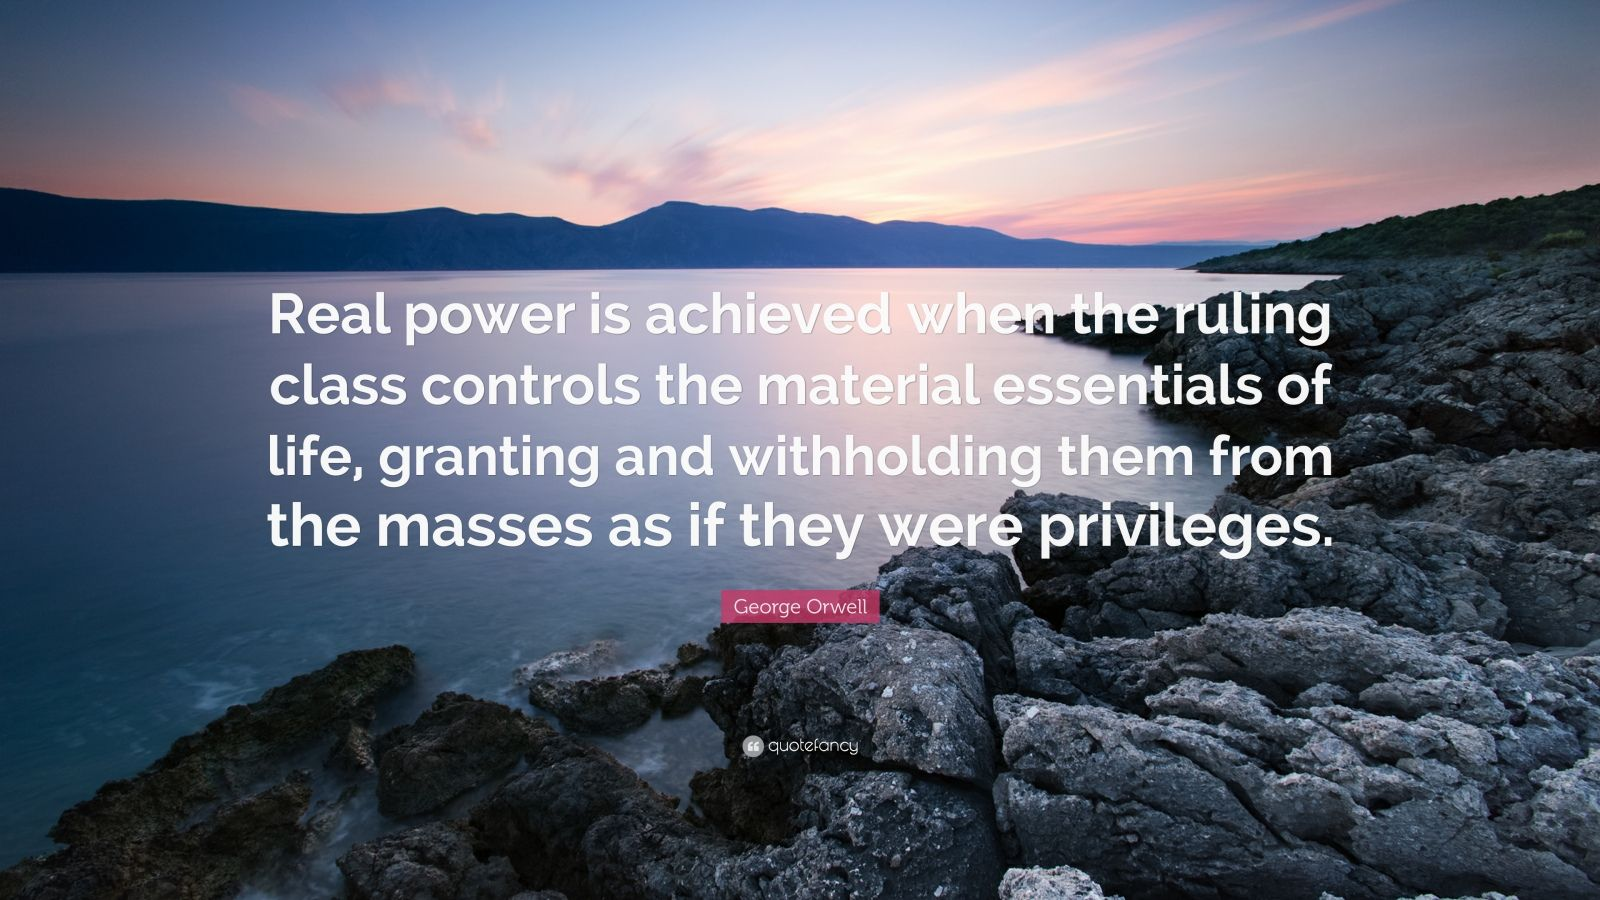 """George Orwell Quote: """"Real power is achieved when the ruling class controls the material essentials of life, granting and withholding them from the masses as if they were privileges."""""""